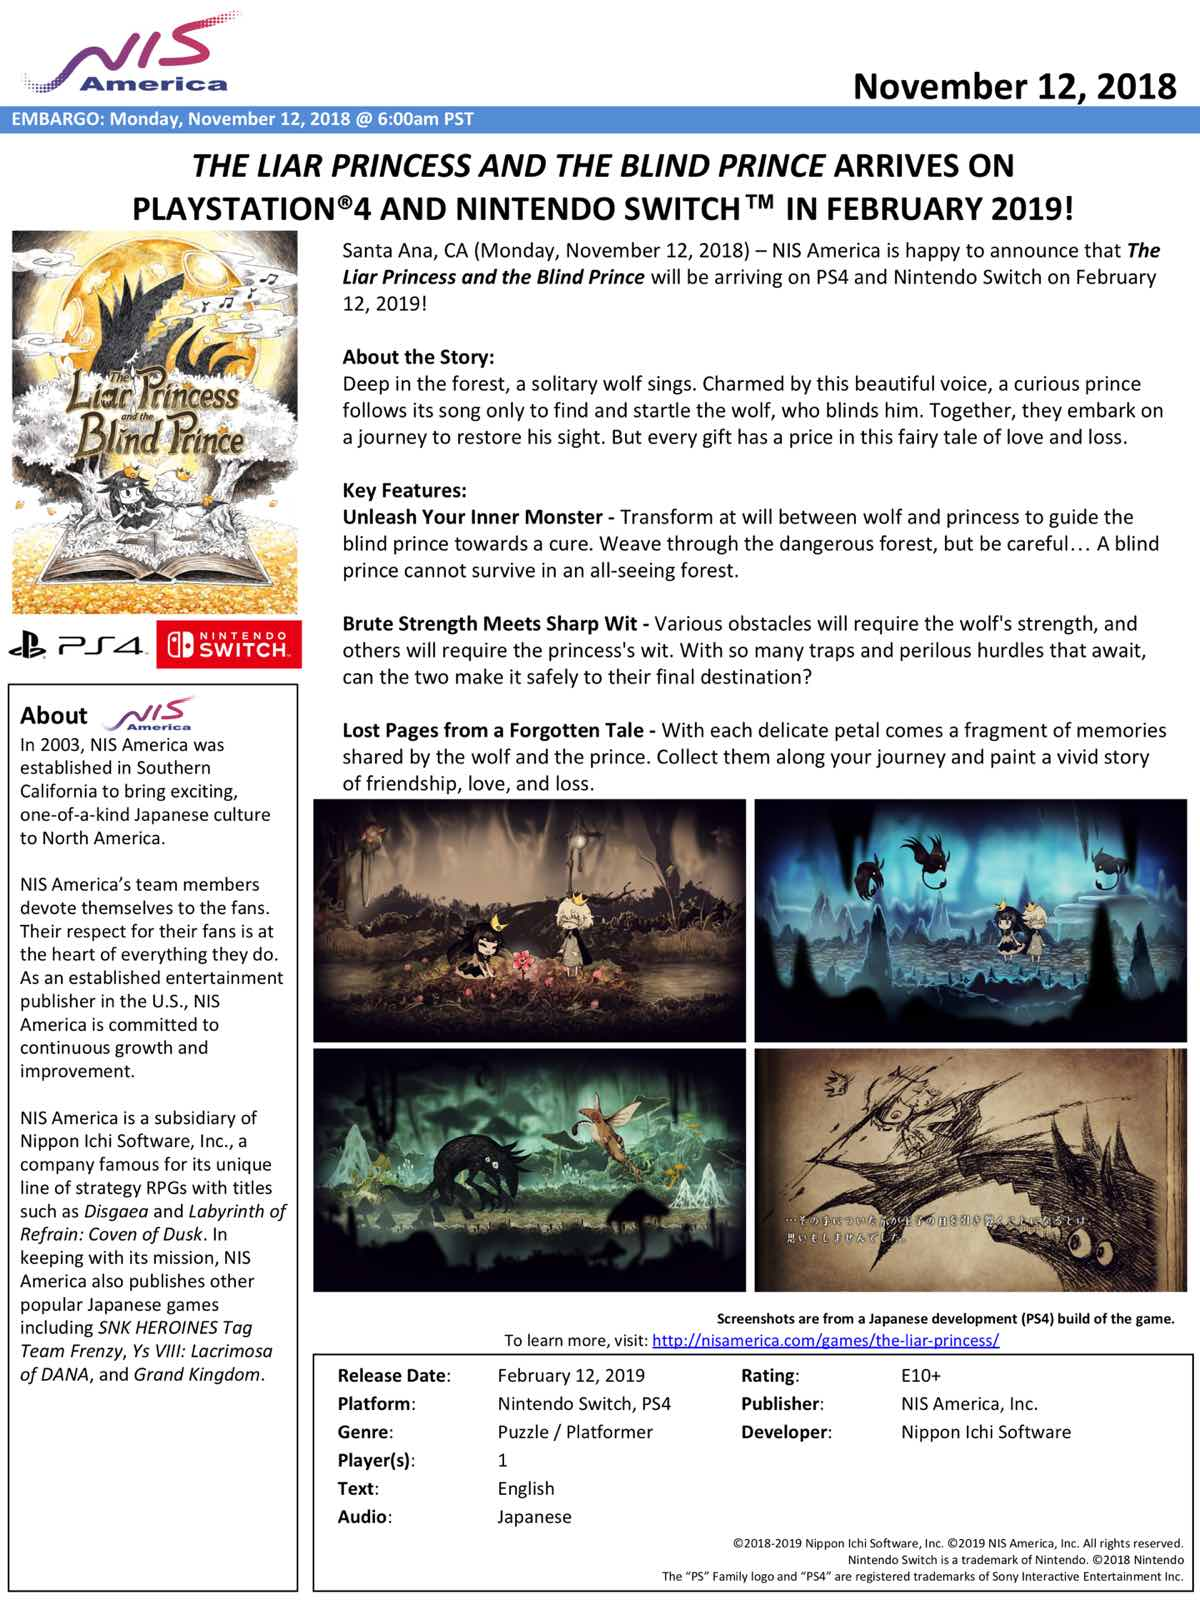 The Liar Princess And The Blind Prince Releasing On February